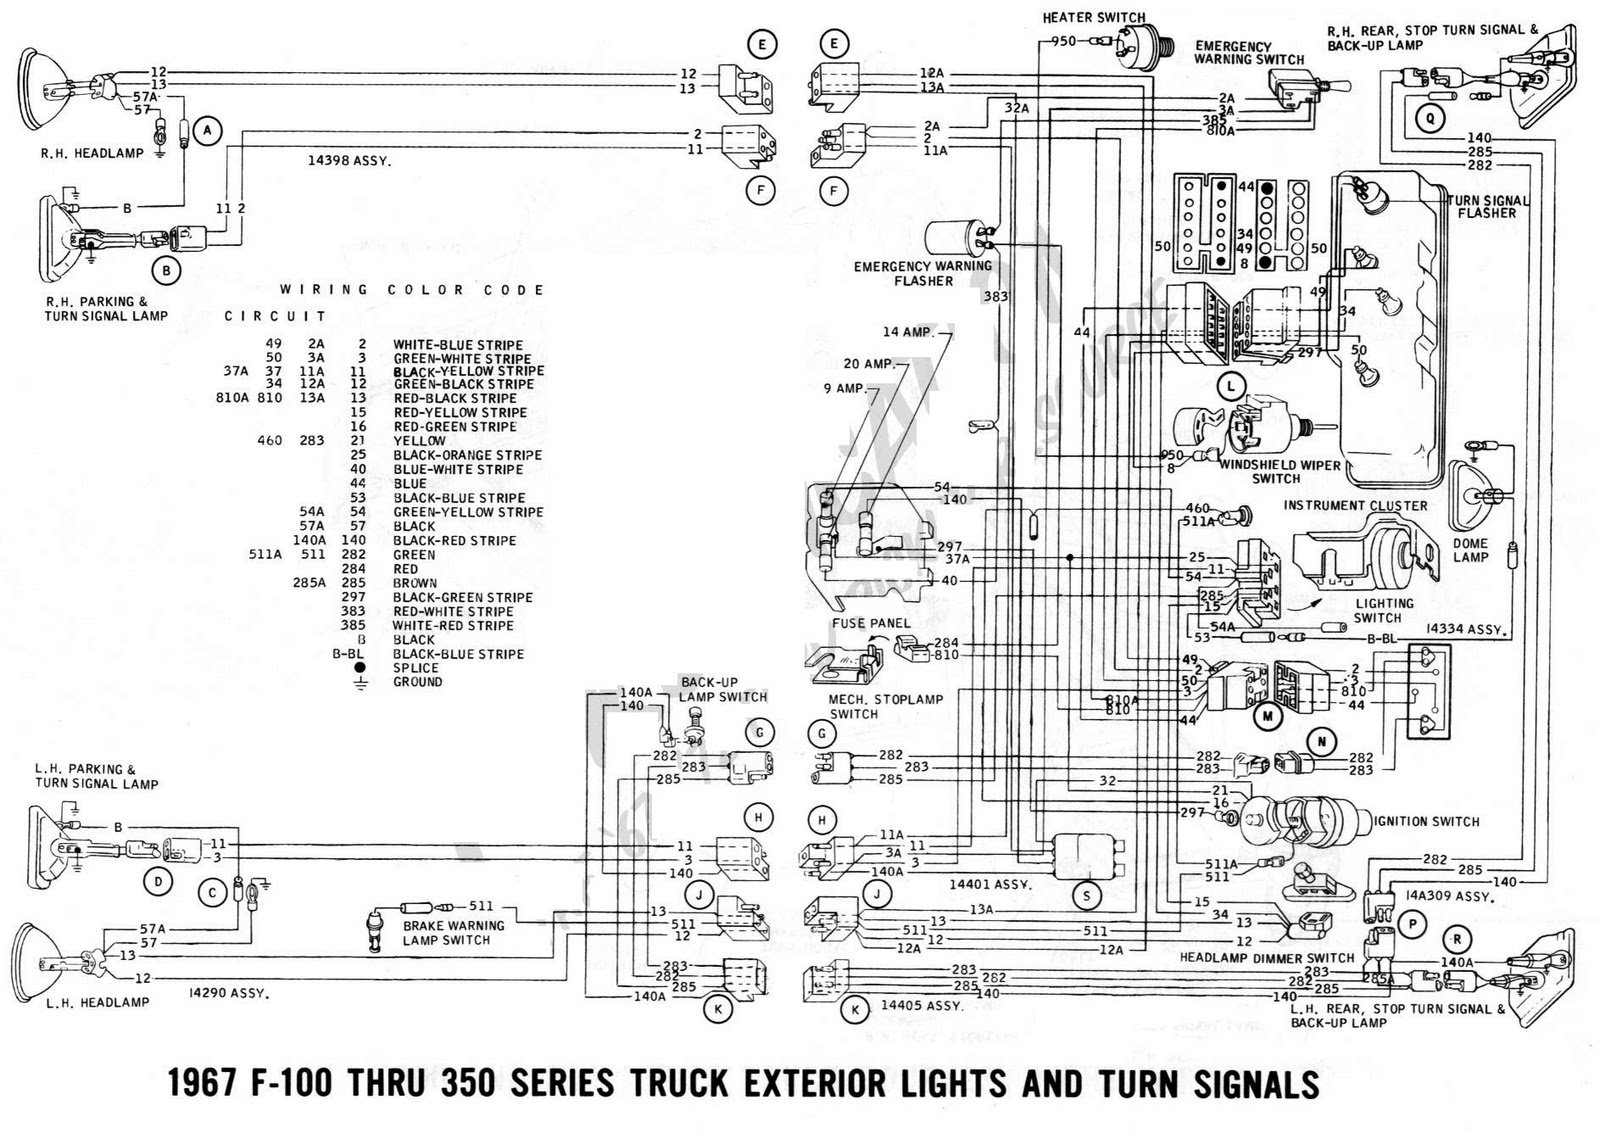 Fantastic Mach 460 Wiring Diagram Ford Mustang Gallery - The Best ...